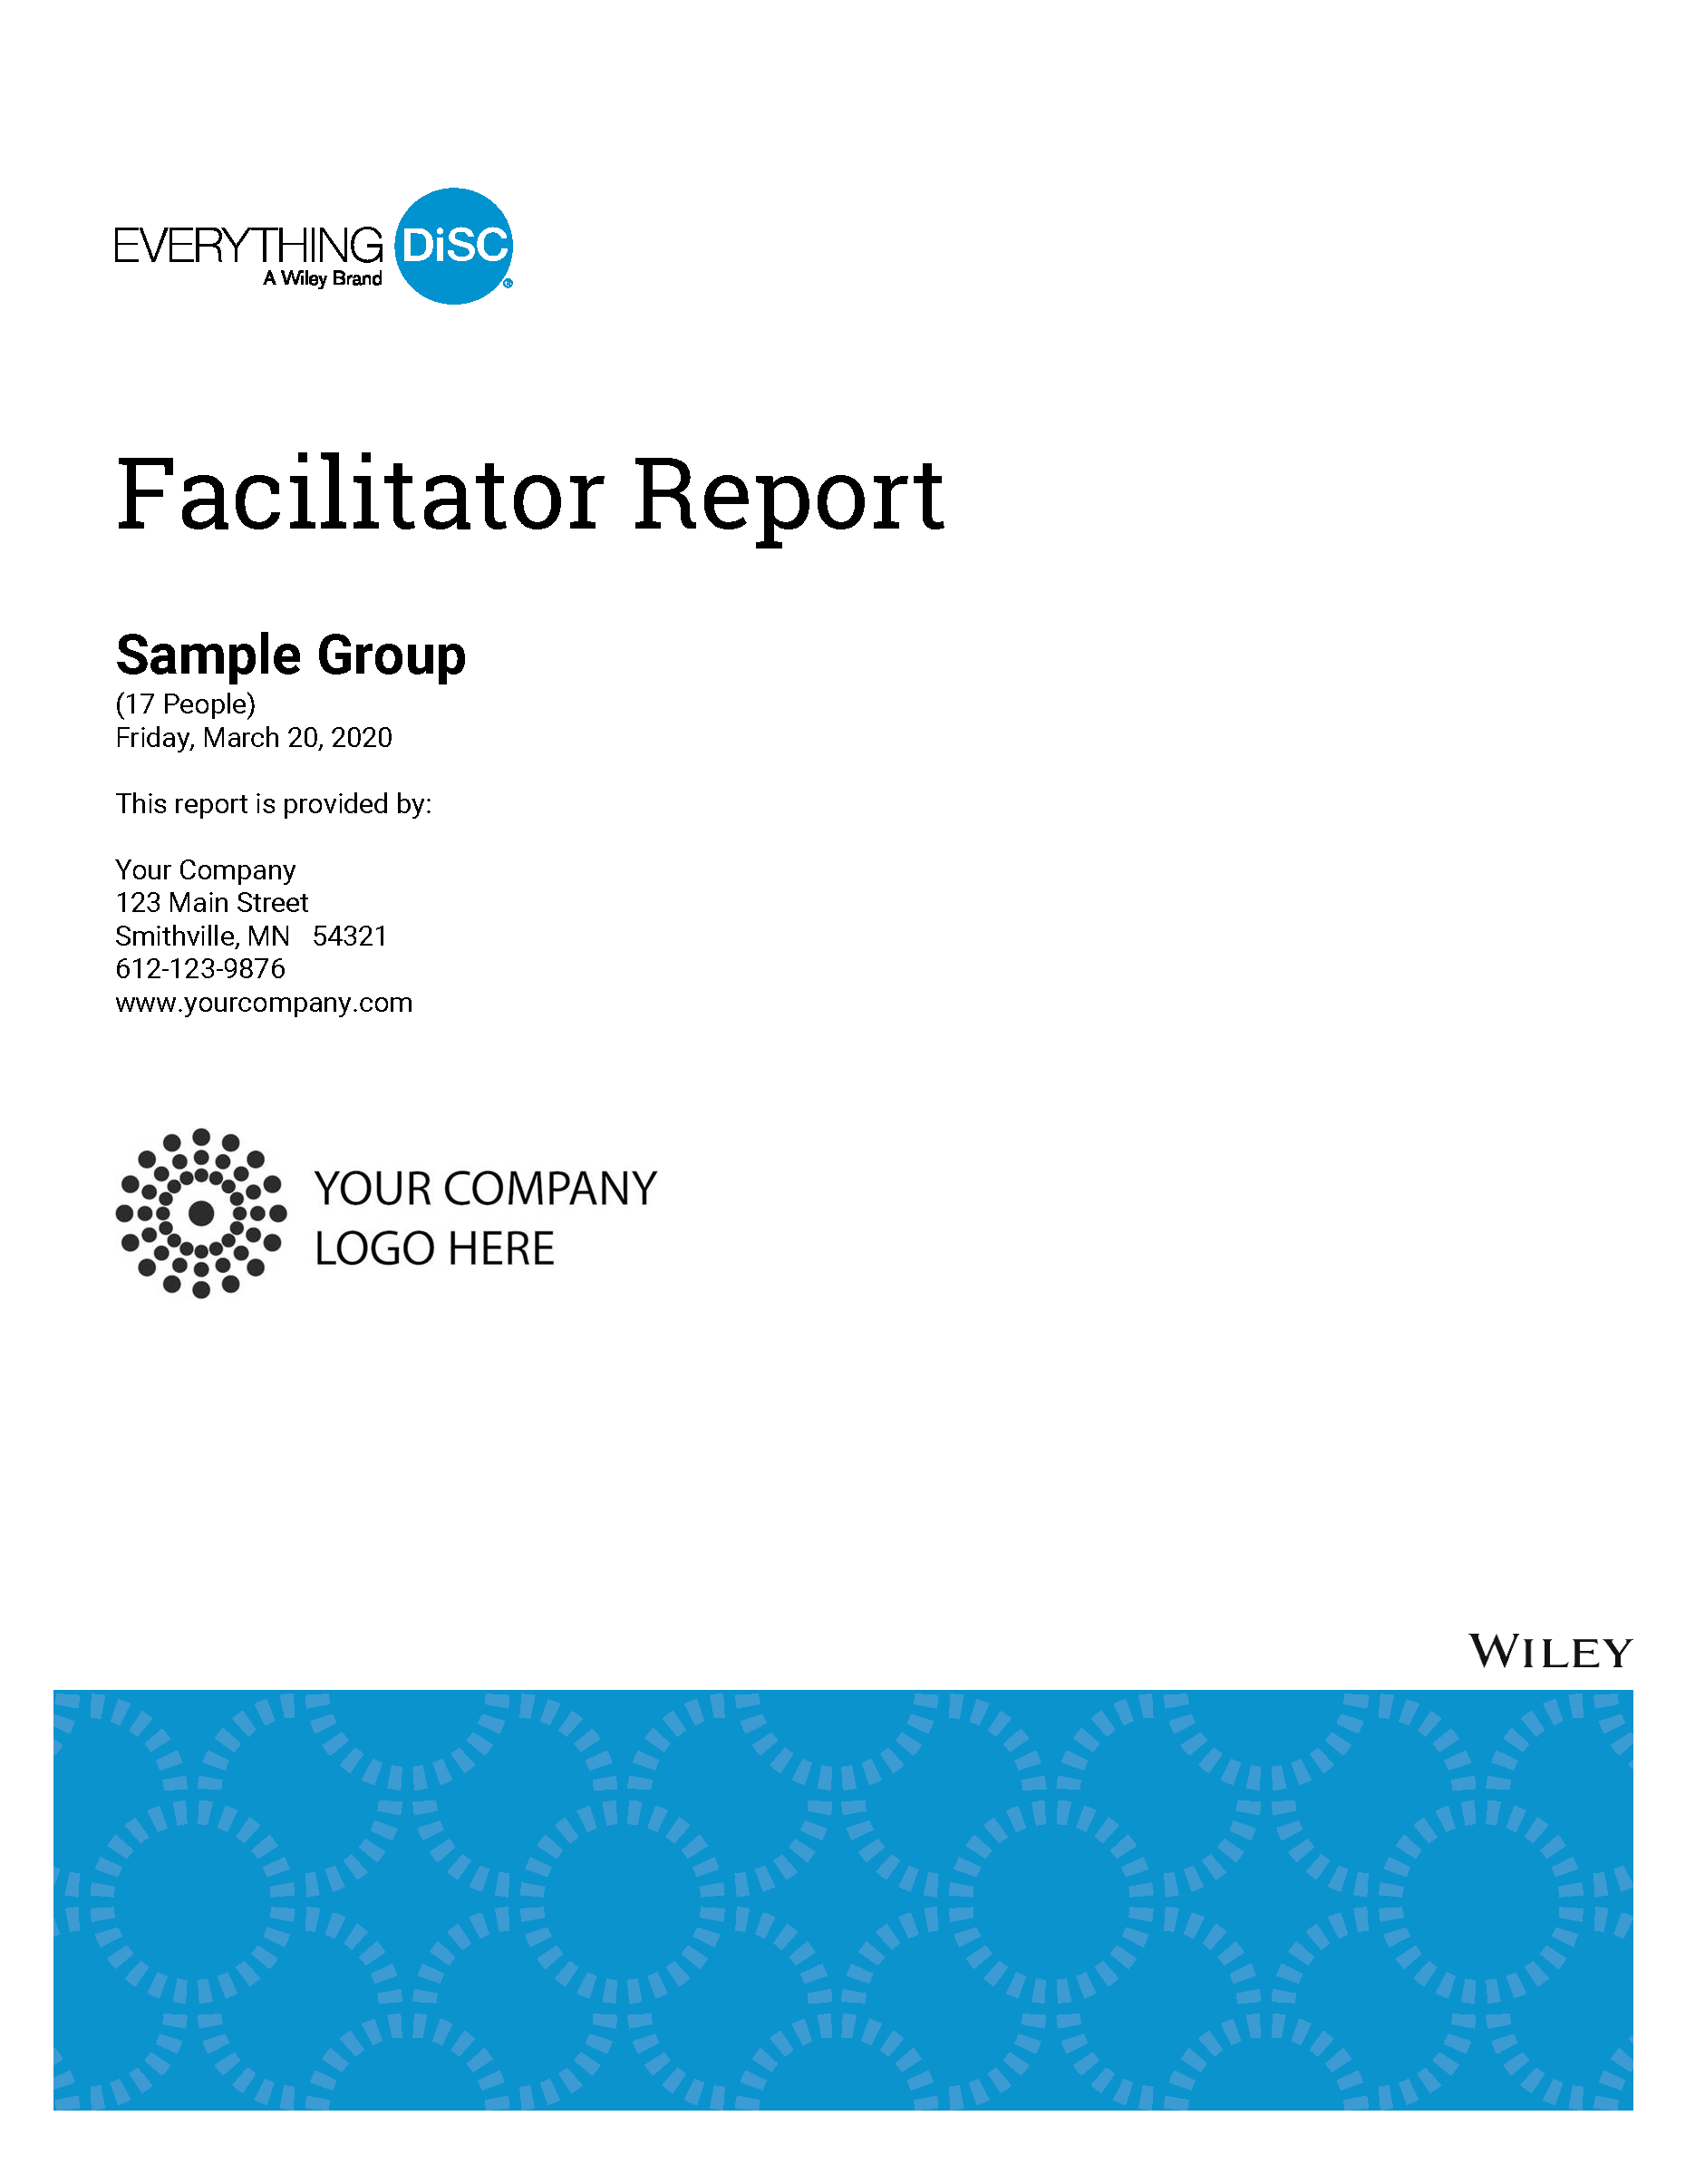 Everything DiSC Facilitor Report Cover May 2020